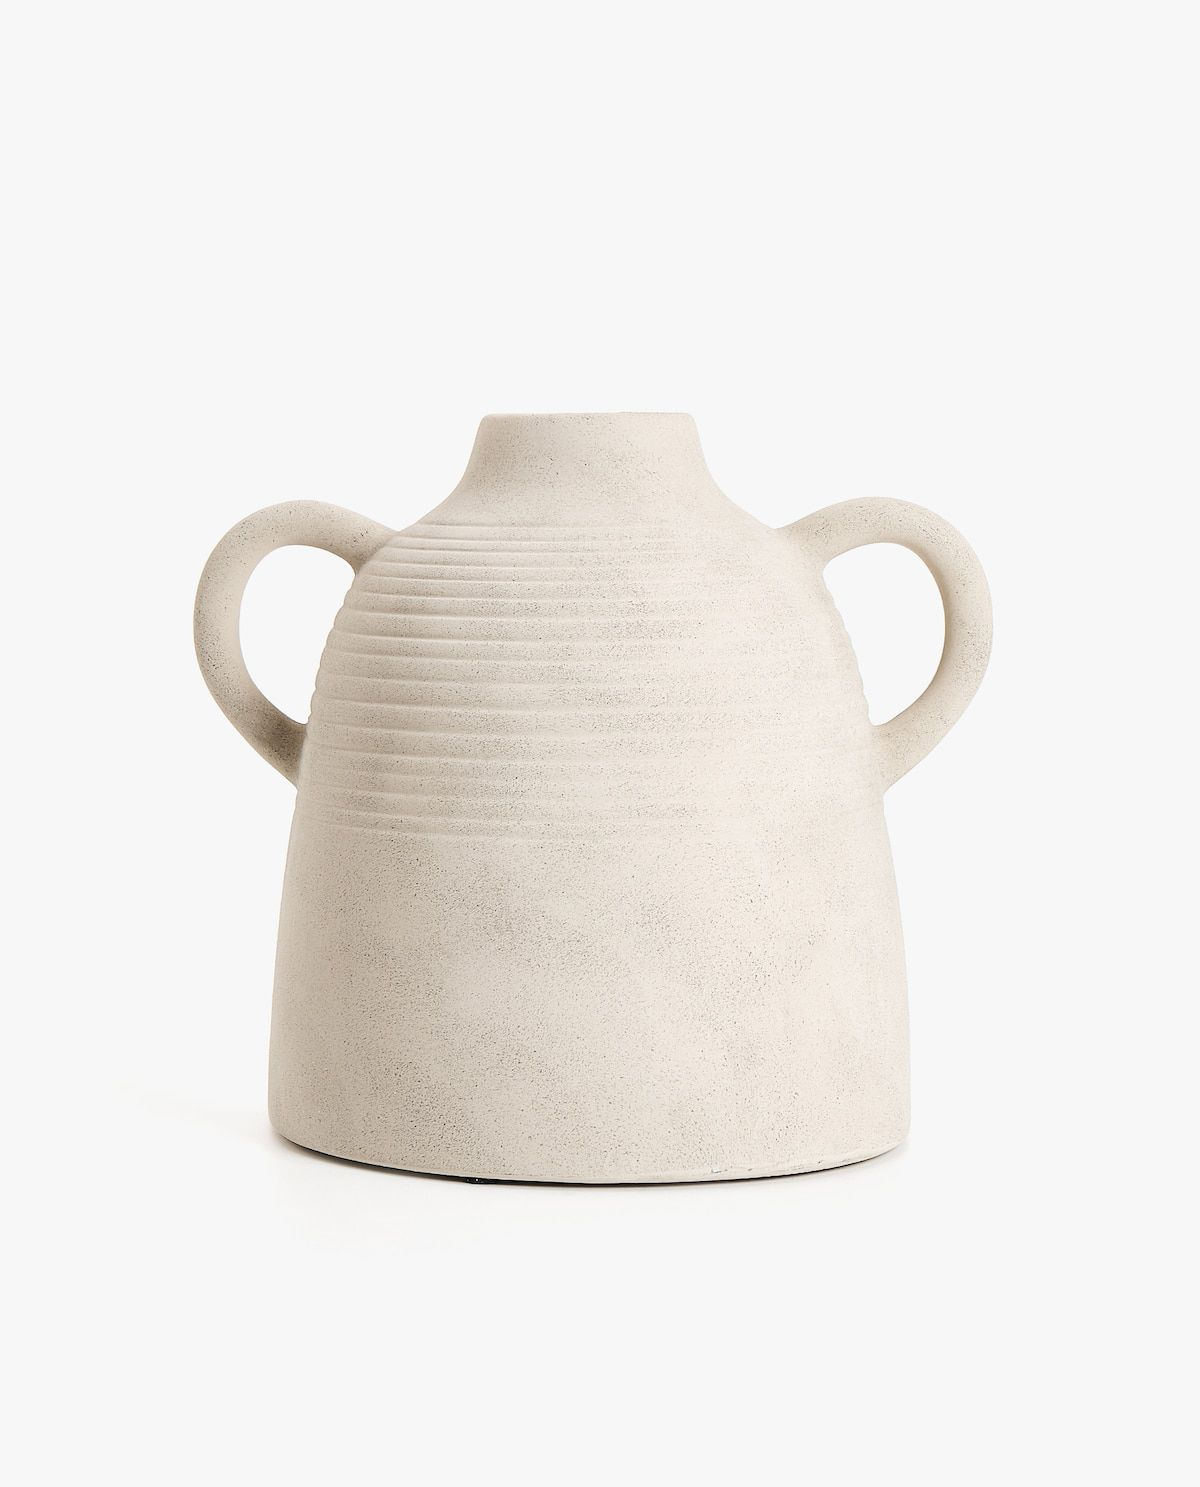 Decorative Ceramic Amphora